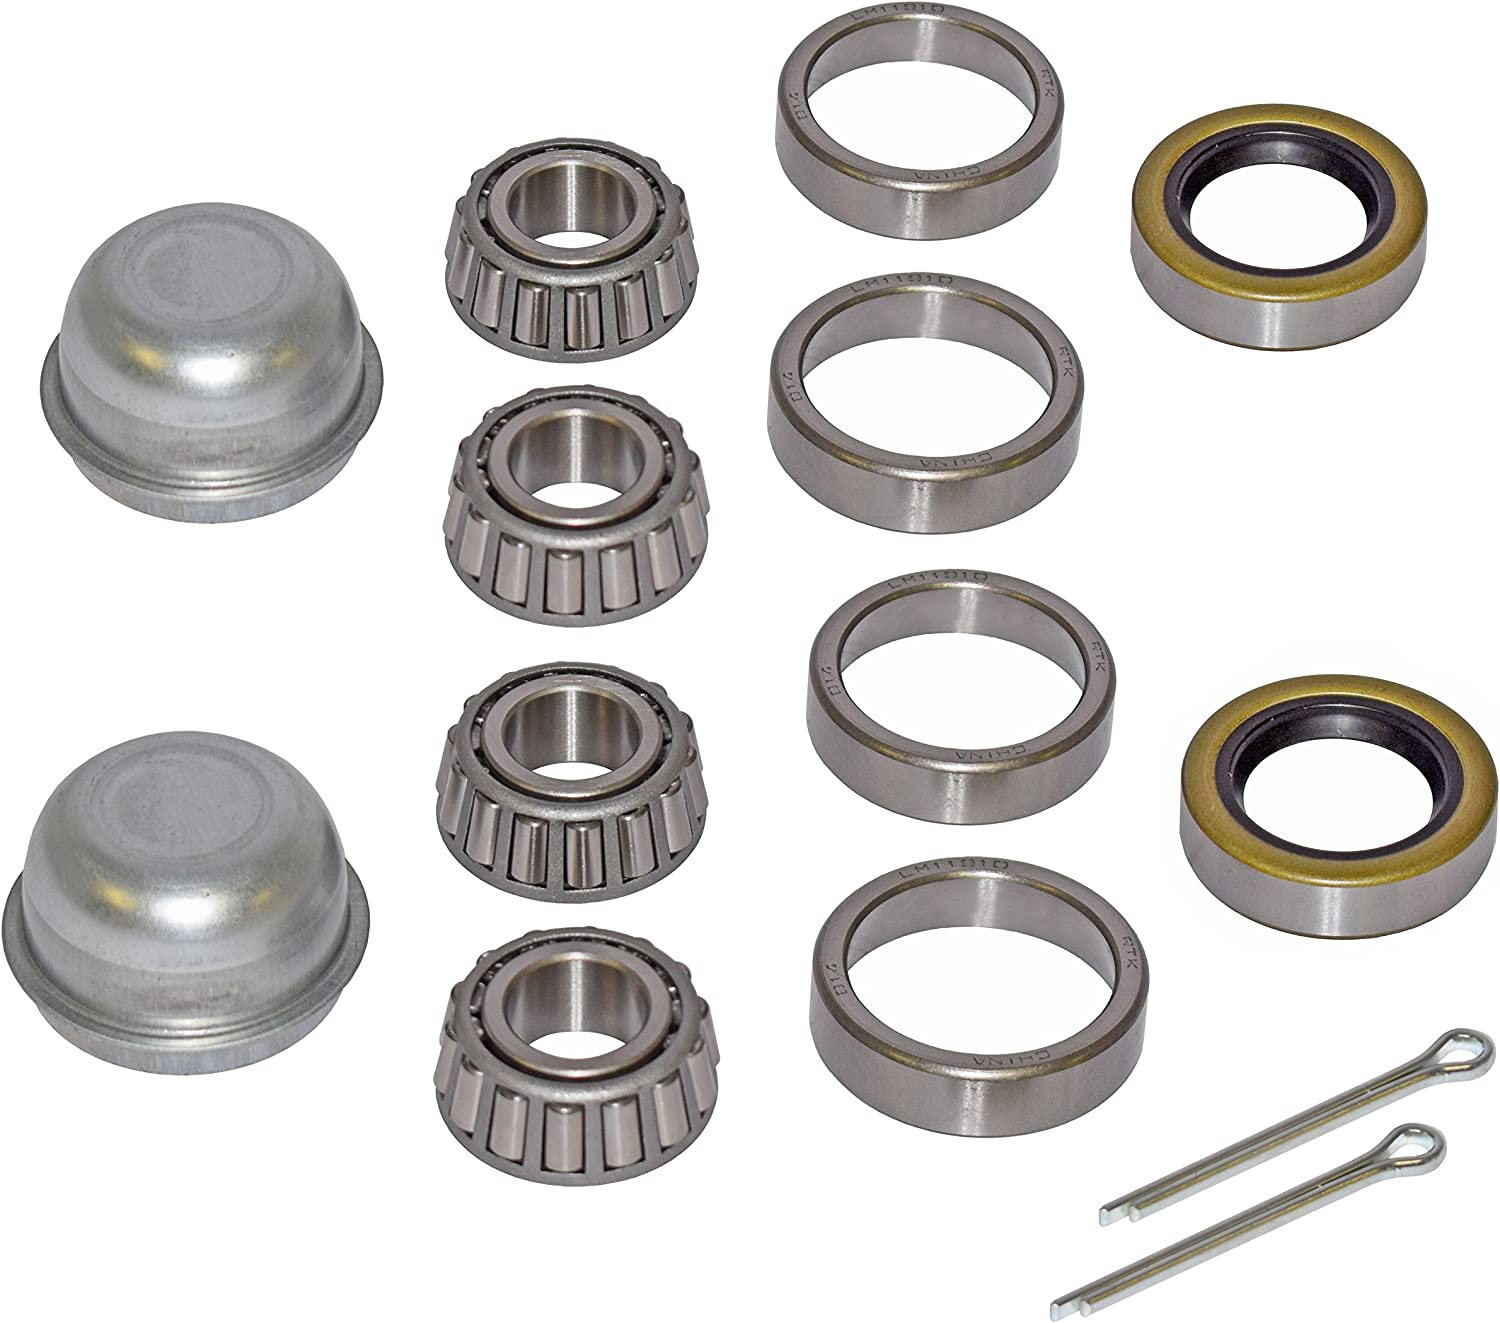 Pair of Trailer Bearing Repair Kits for 3//4 Inch Straight Spindles